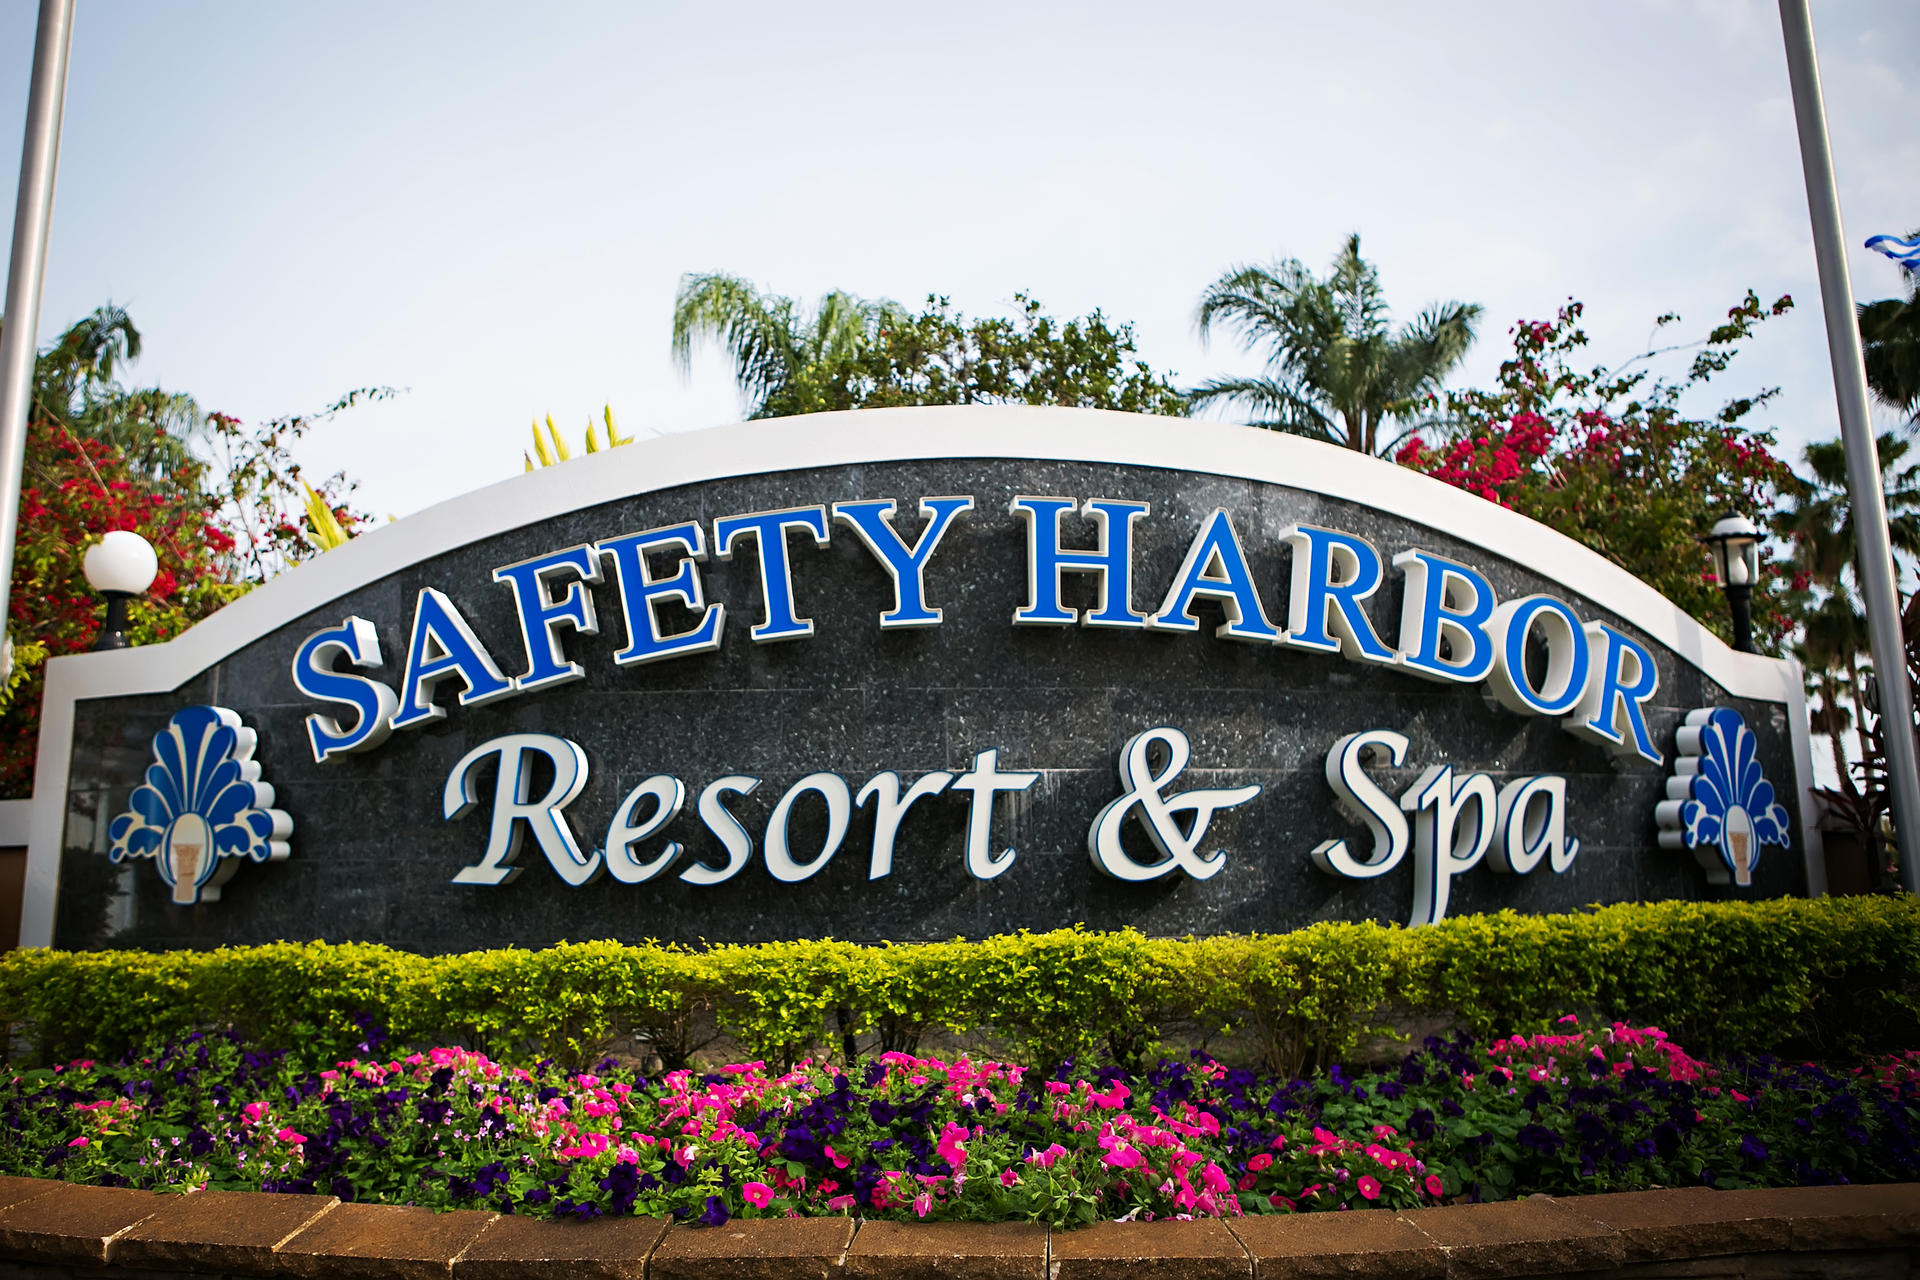 sign that says safety harbor resort & spa